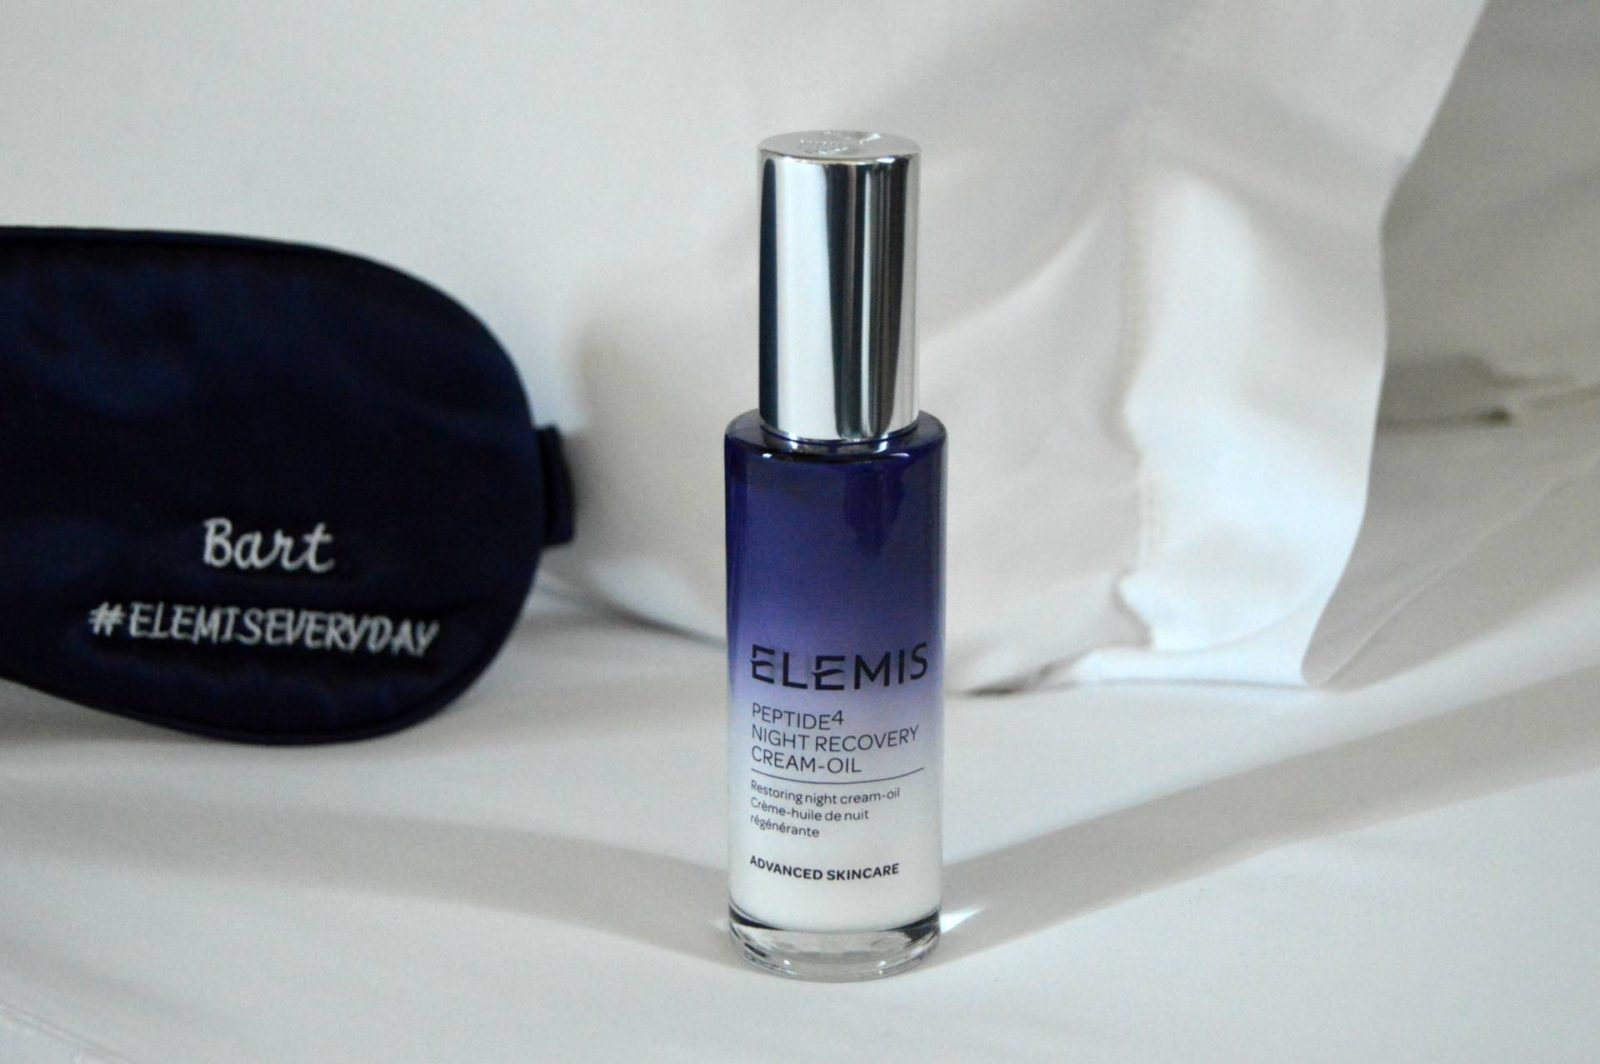 While You Were Sleeping: ELEMIS Peptide⁴ Night Recovery Cream-Oil